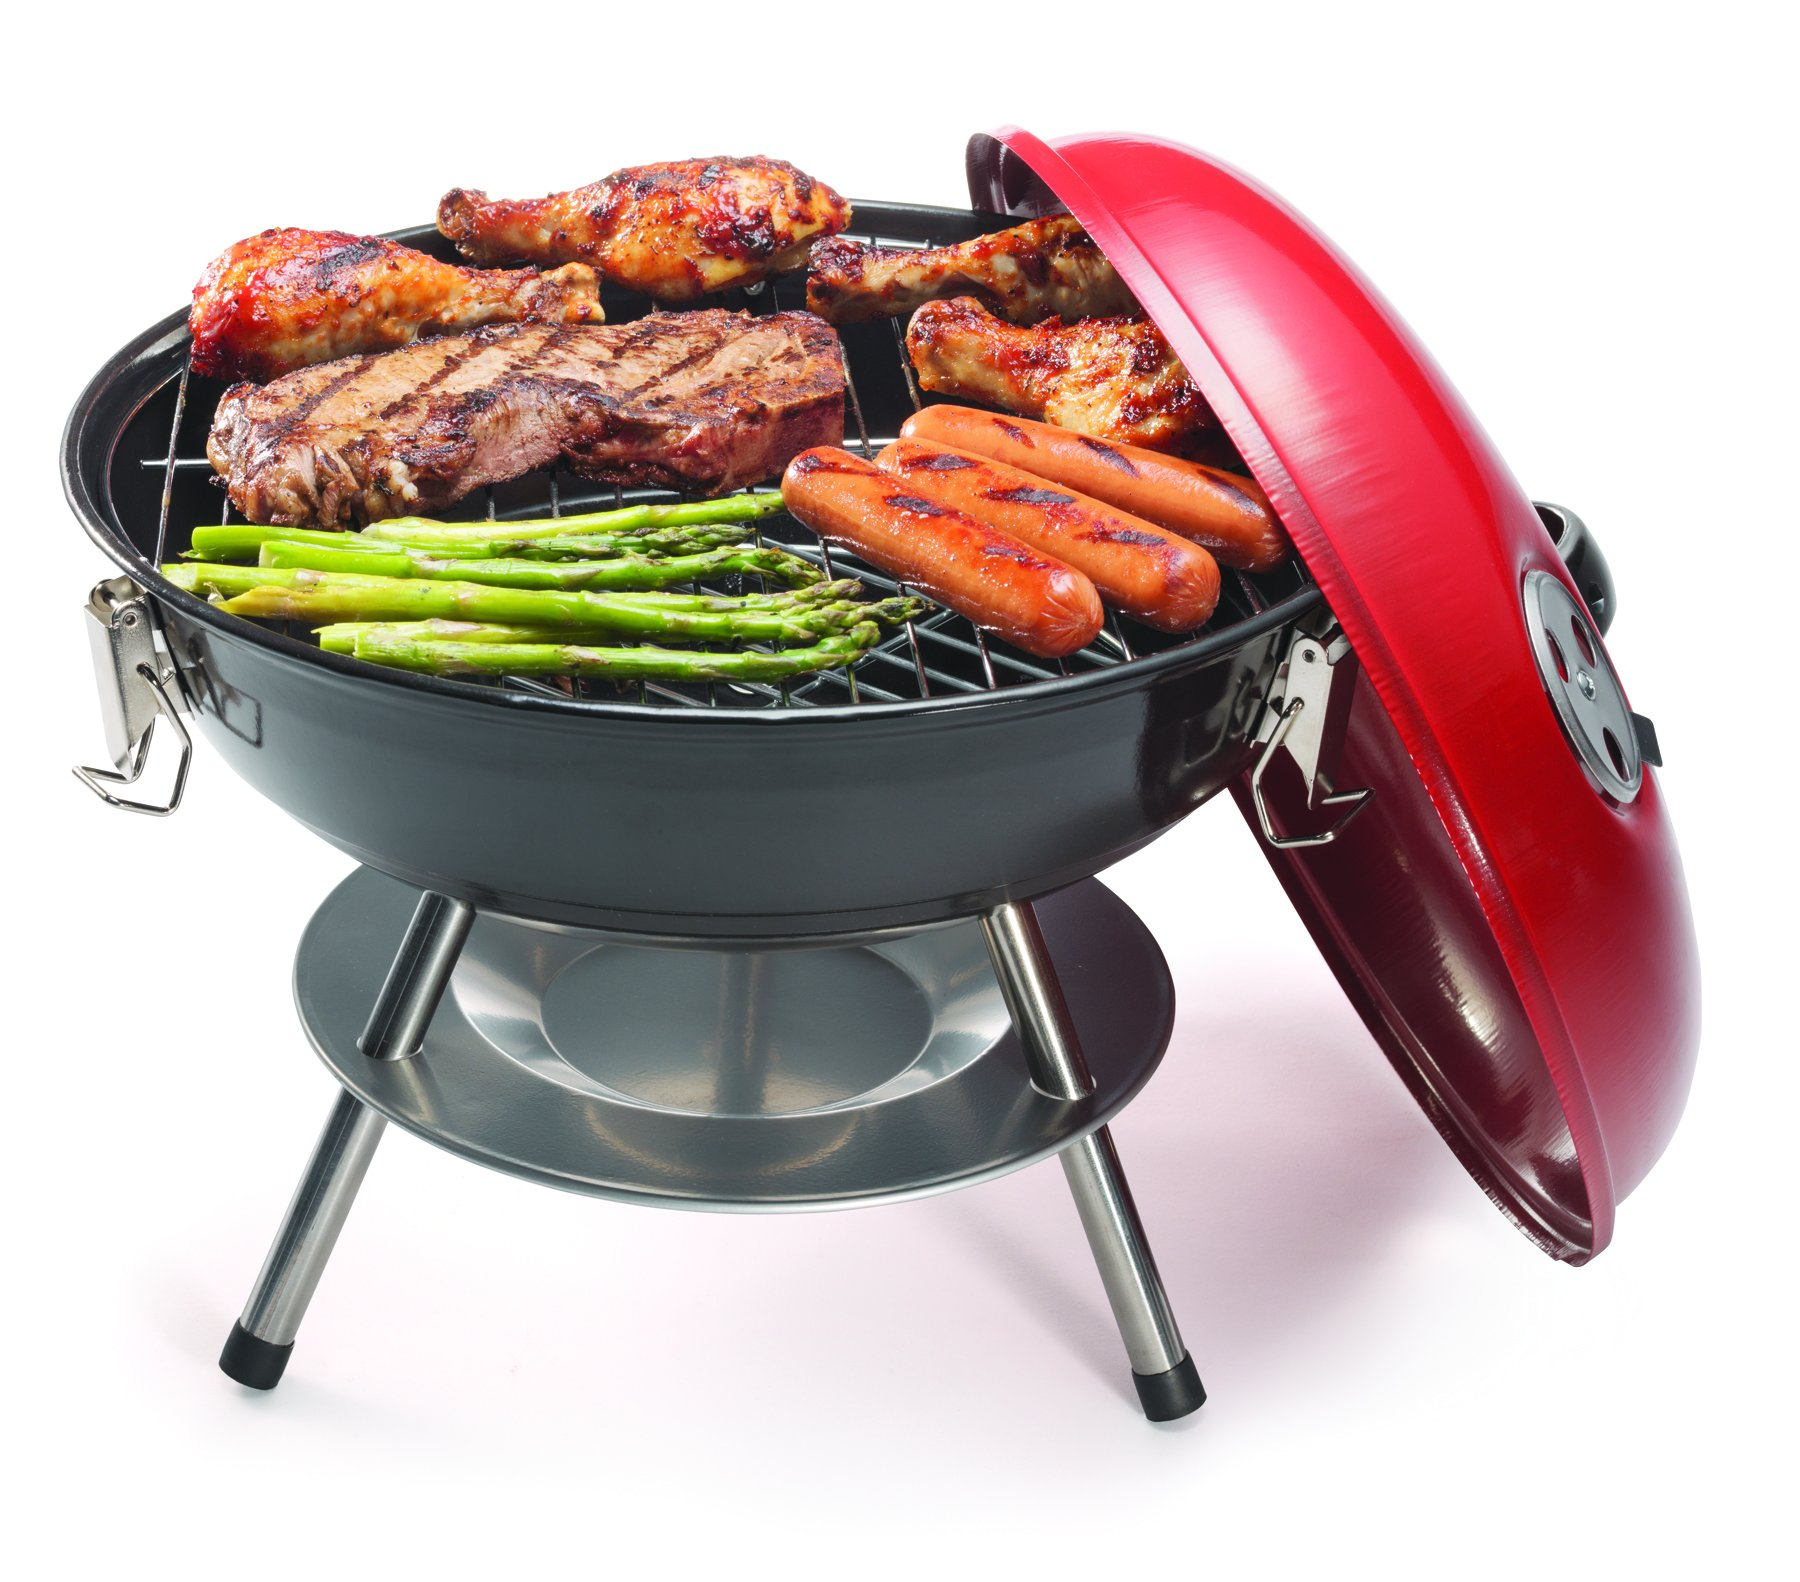 Cuisinart CCG-190RB Portable Charcoal Grill, 14-Inch, Red by Cuisinart